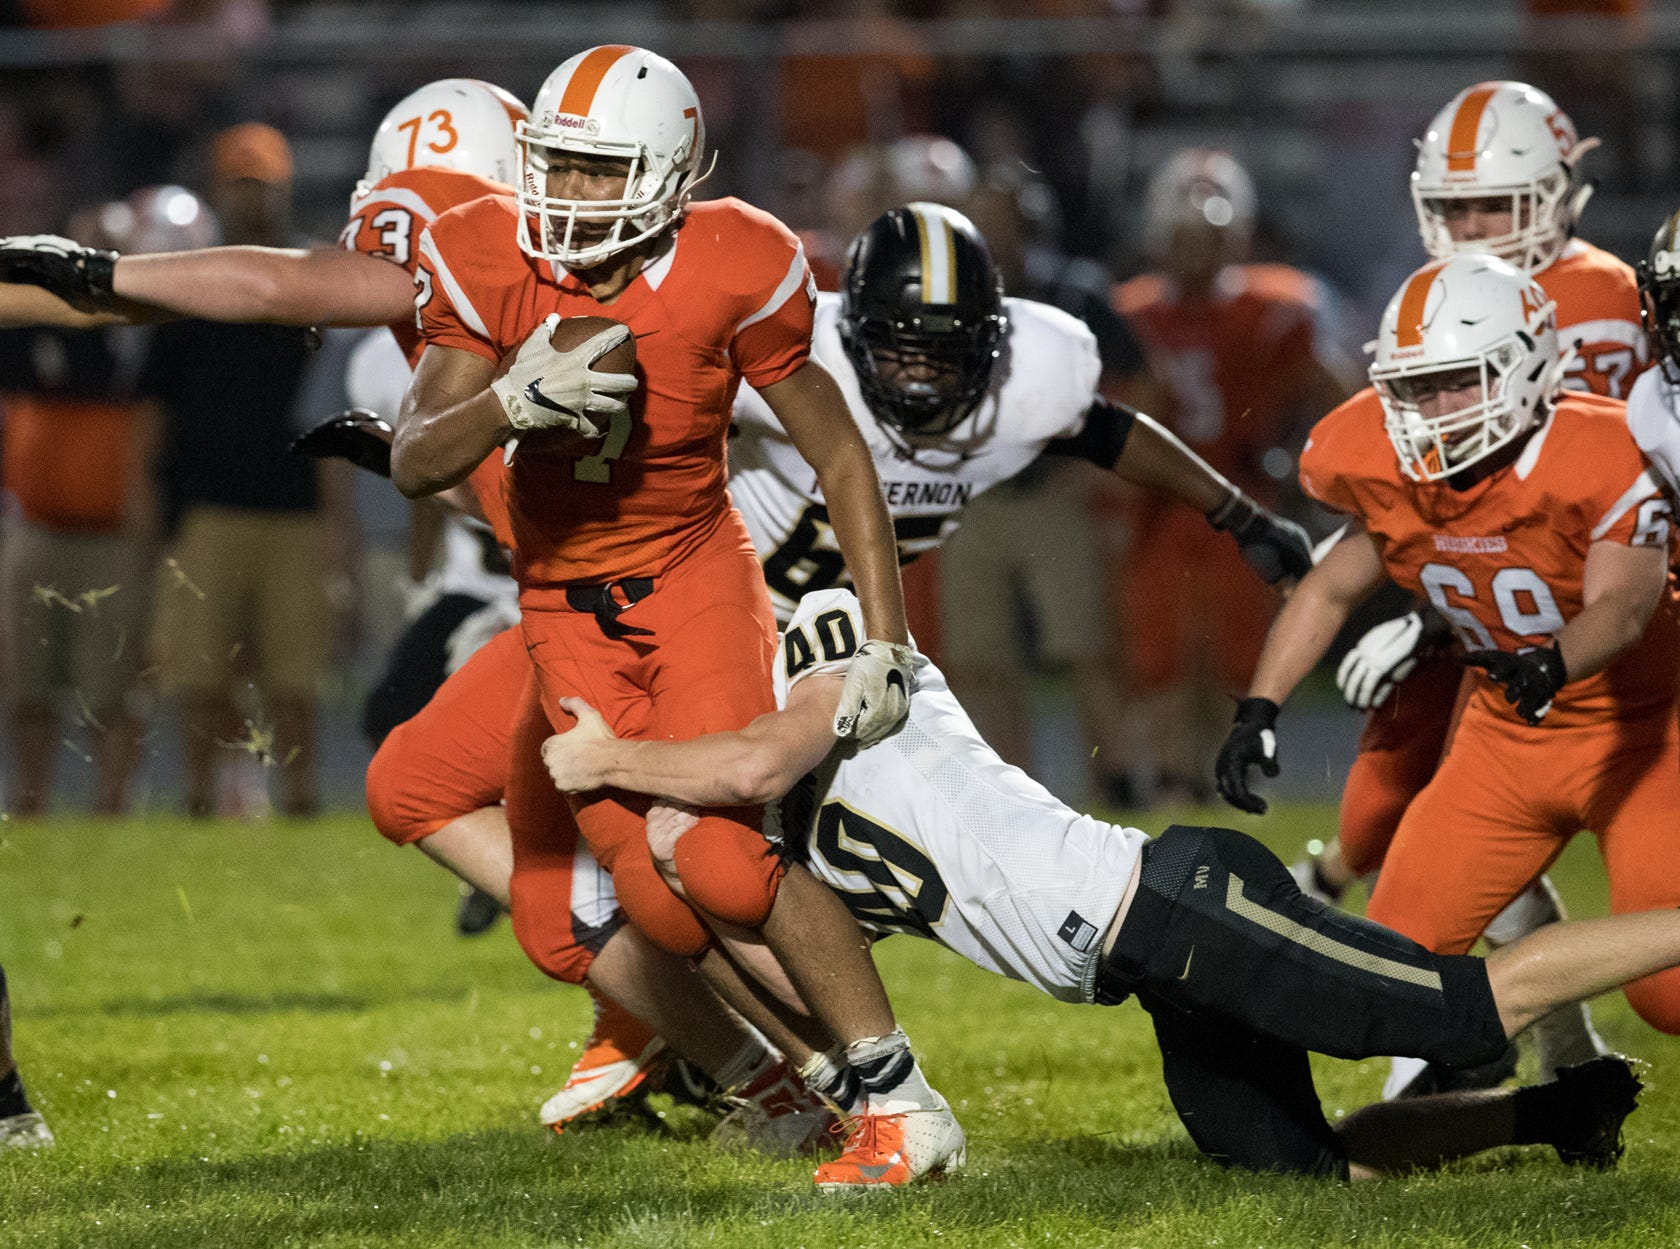 Deshawn King of Hamilton Heights High School is tackled by Cole Schneider from Mount Vernon High School at Hamilton Heights High School football, won by MVHS, 43-14, Arcadia, Friday, Aug. 17, 2018. This game is the first for HHHS head coach Jon Kirschner, who faced his father Mike Kirschner, a veteran and champion coach in his first season at MVHS.